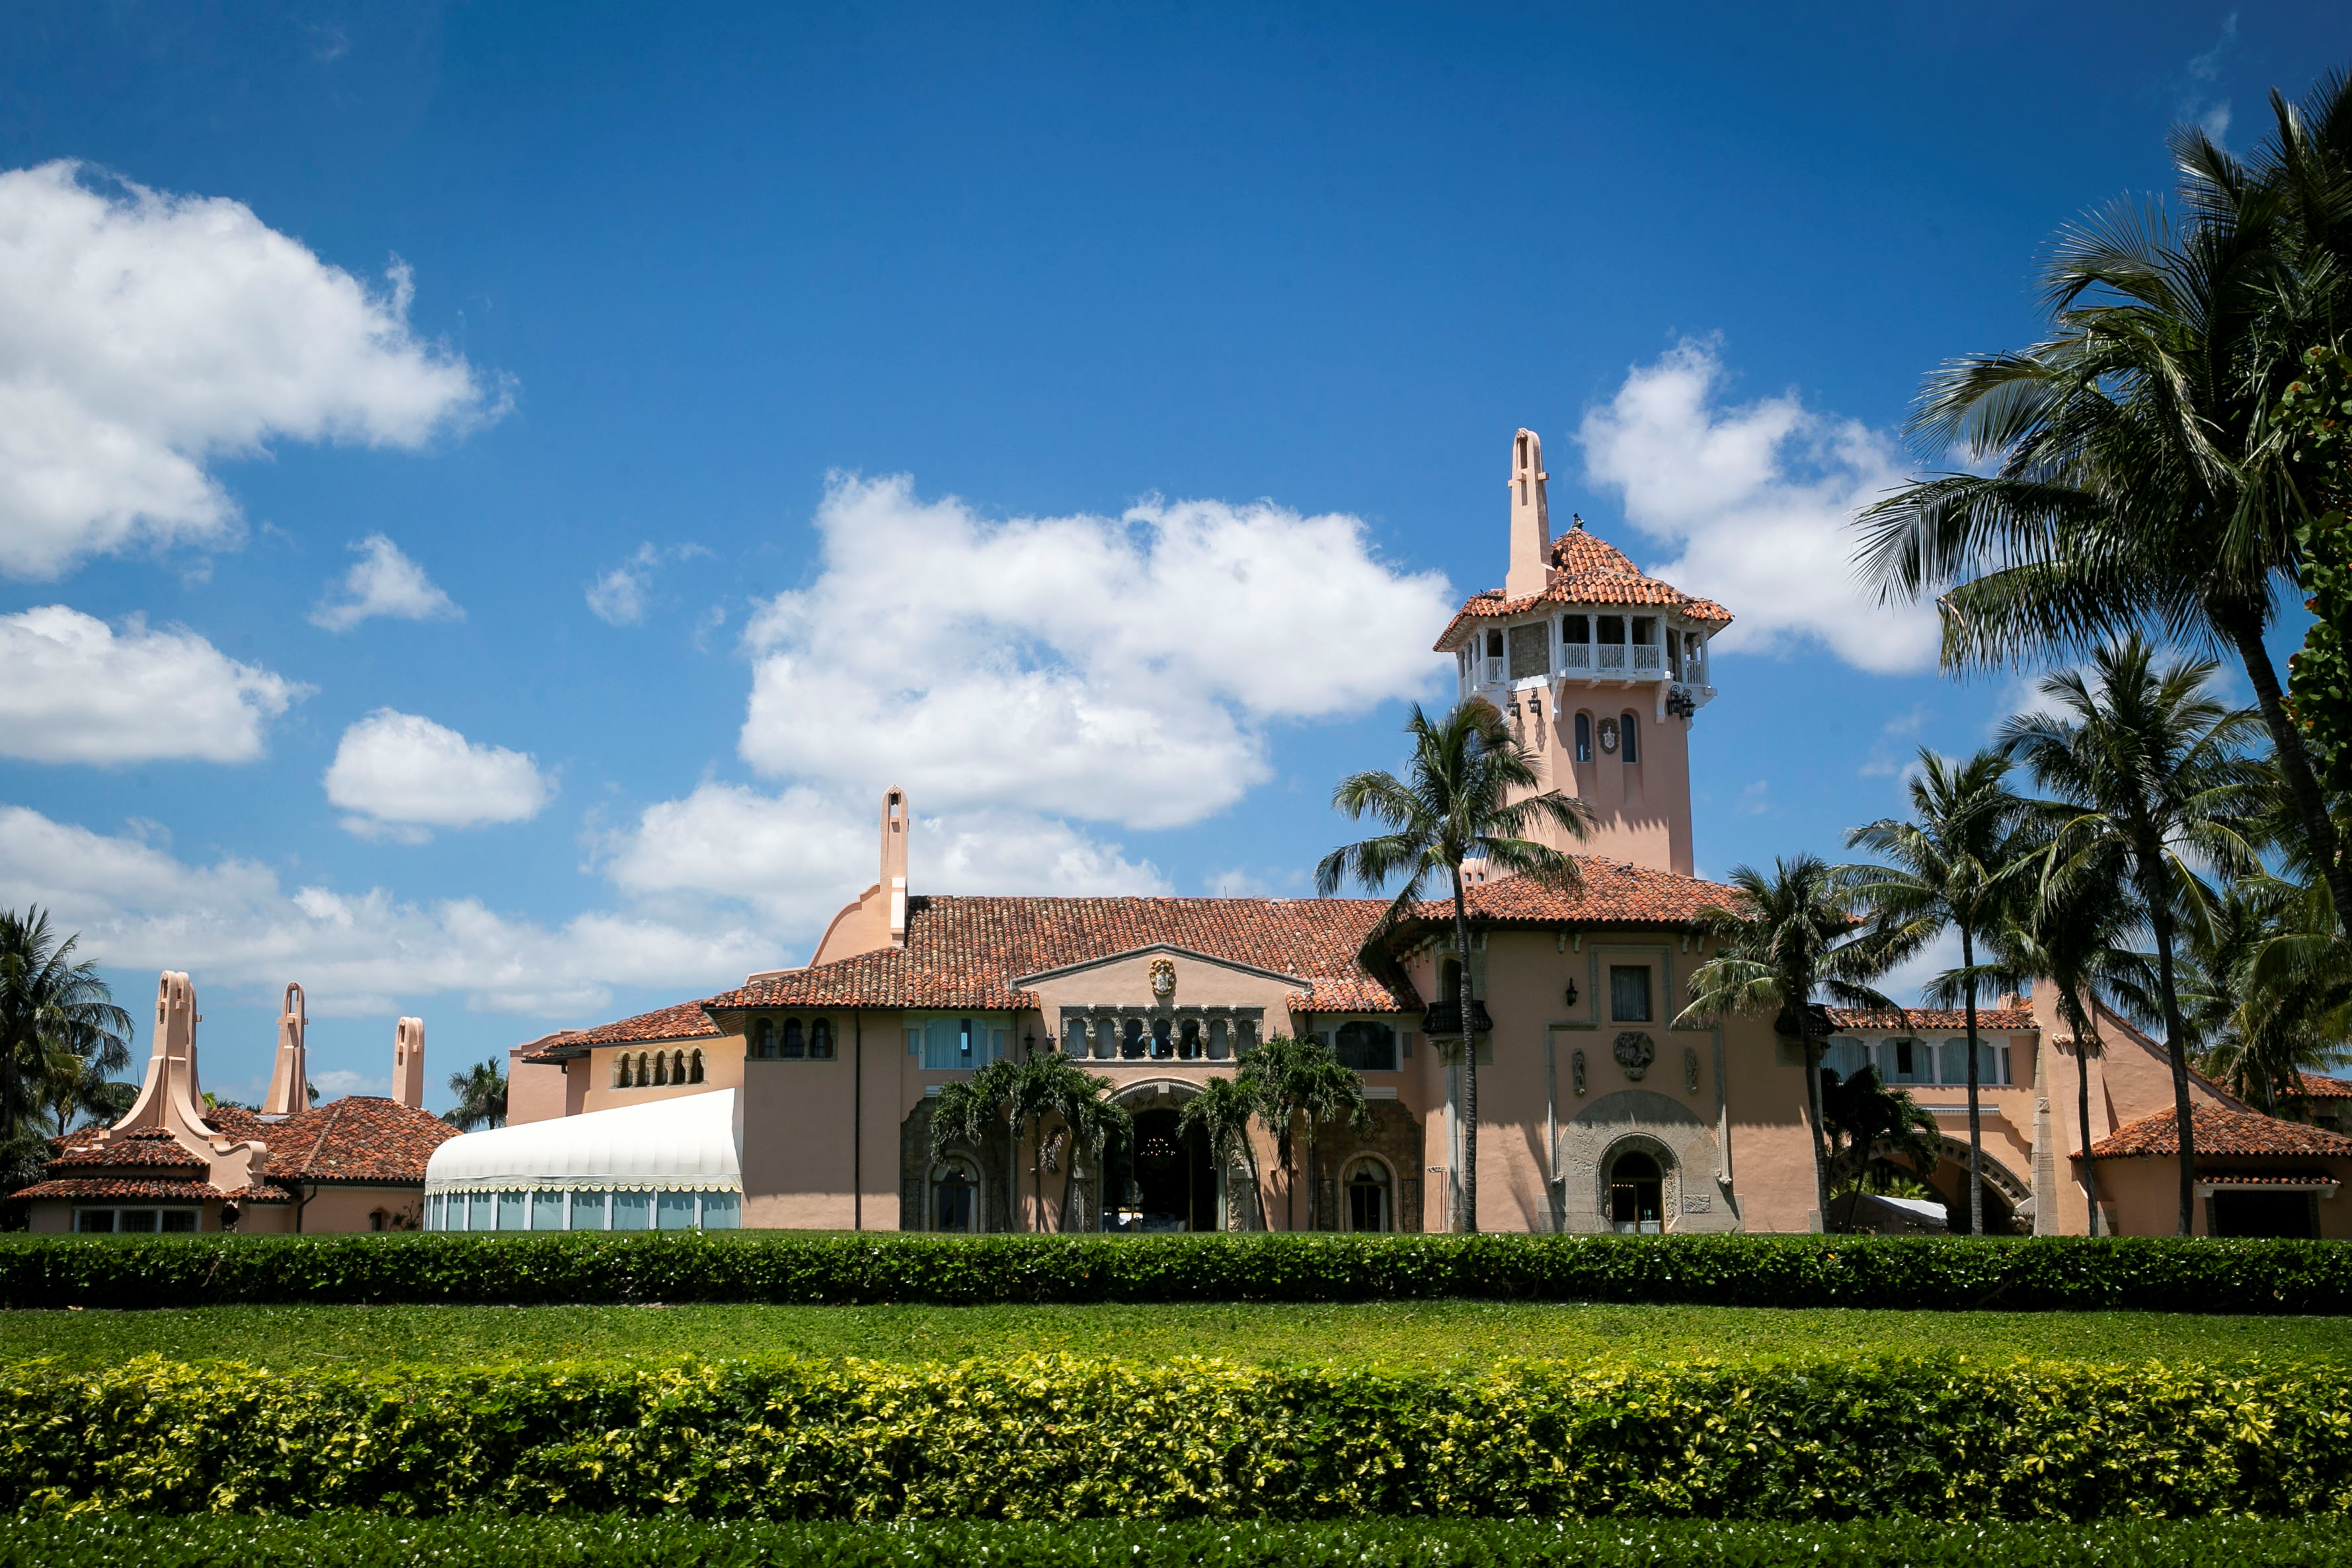 The Mar-a-Lago club, where U.S. President Donald Trump is spending Easter weekend, in Palm Beach, Florida, U.S., April 21, 2019. REUTERS/Al Drago